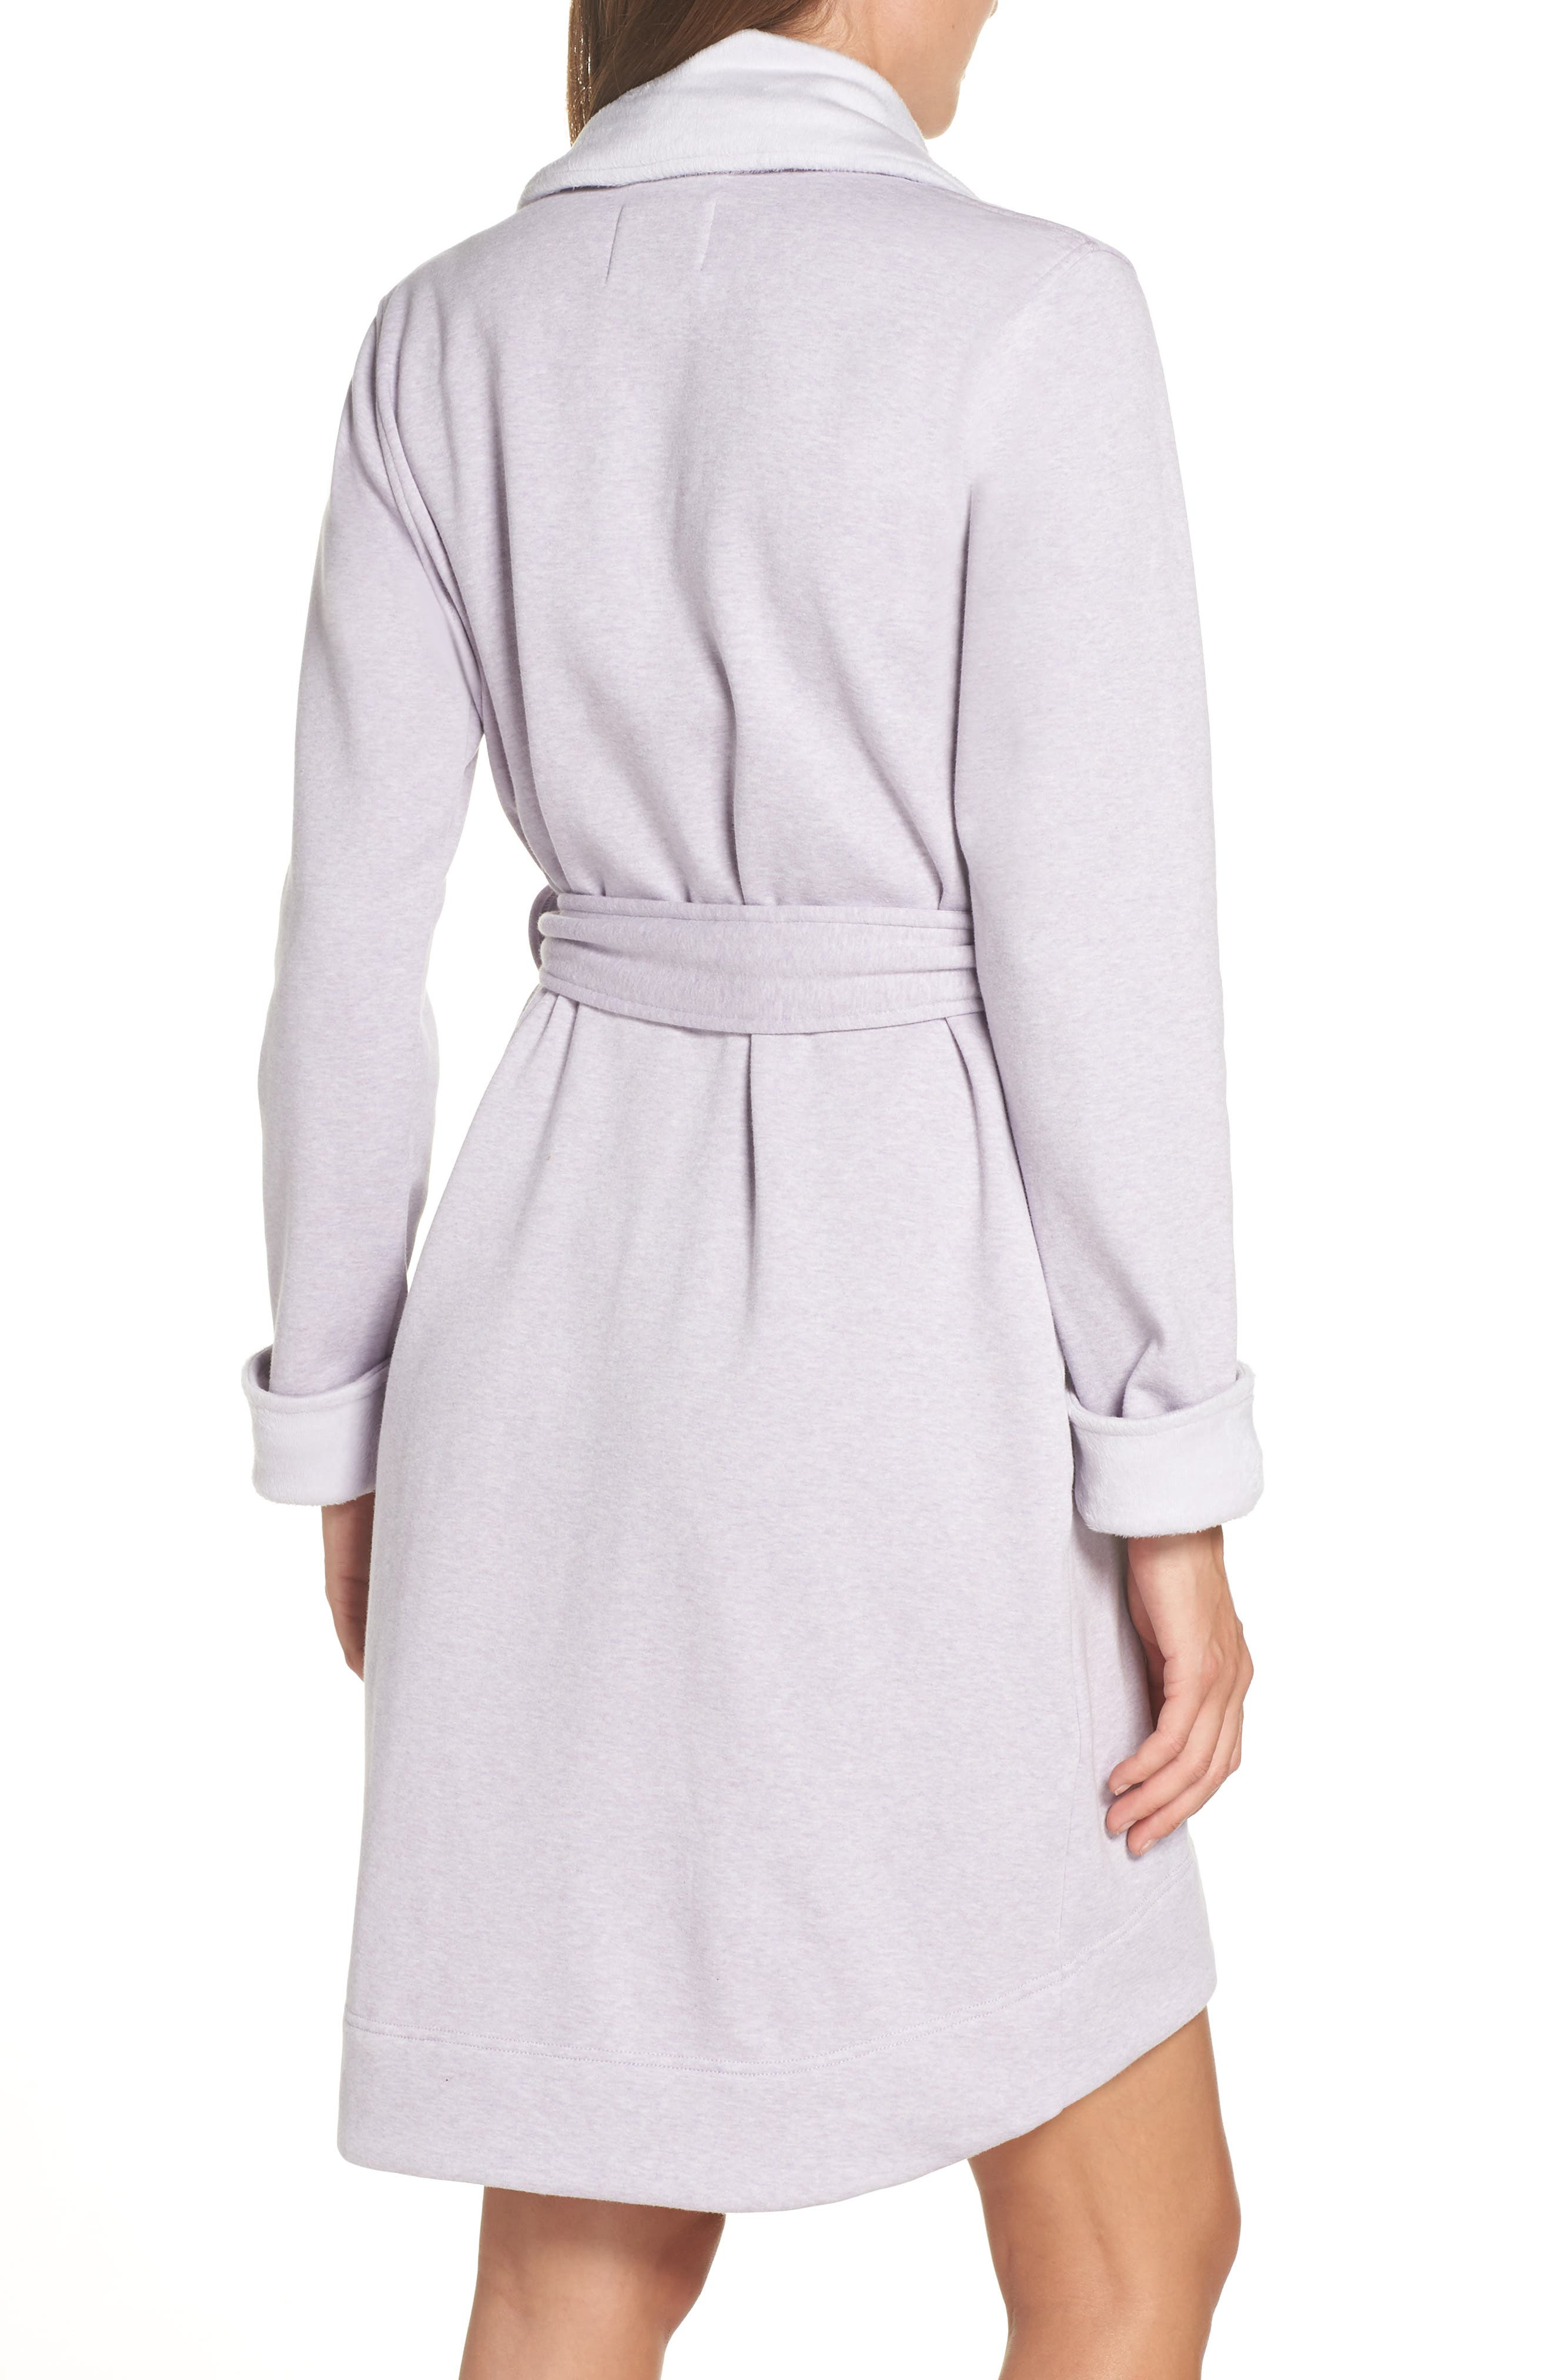 Blanche II Short Robe,                             Alternate thumbnail 12, color,